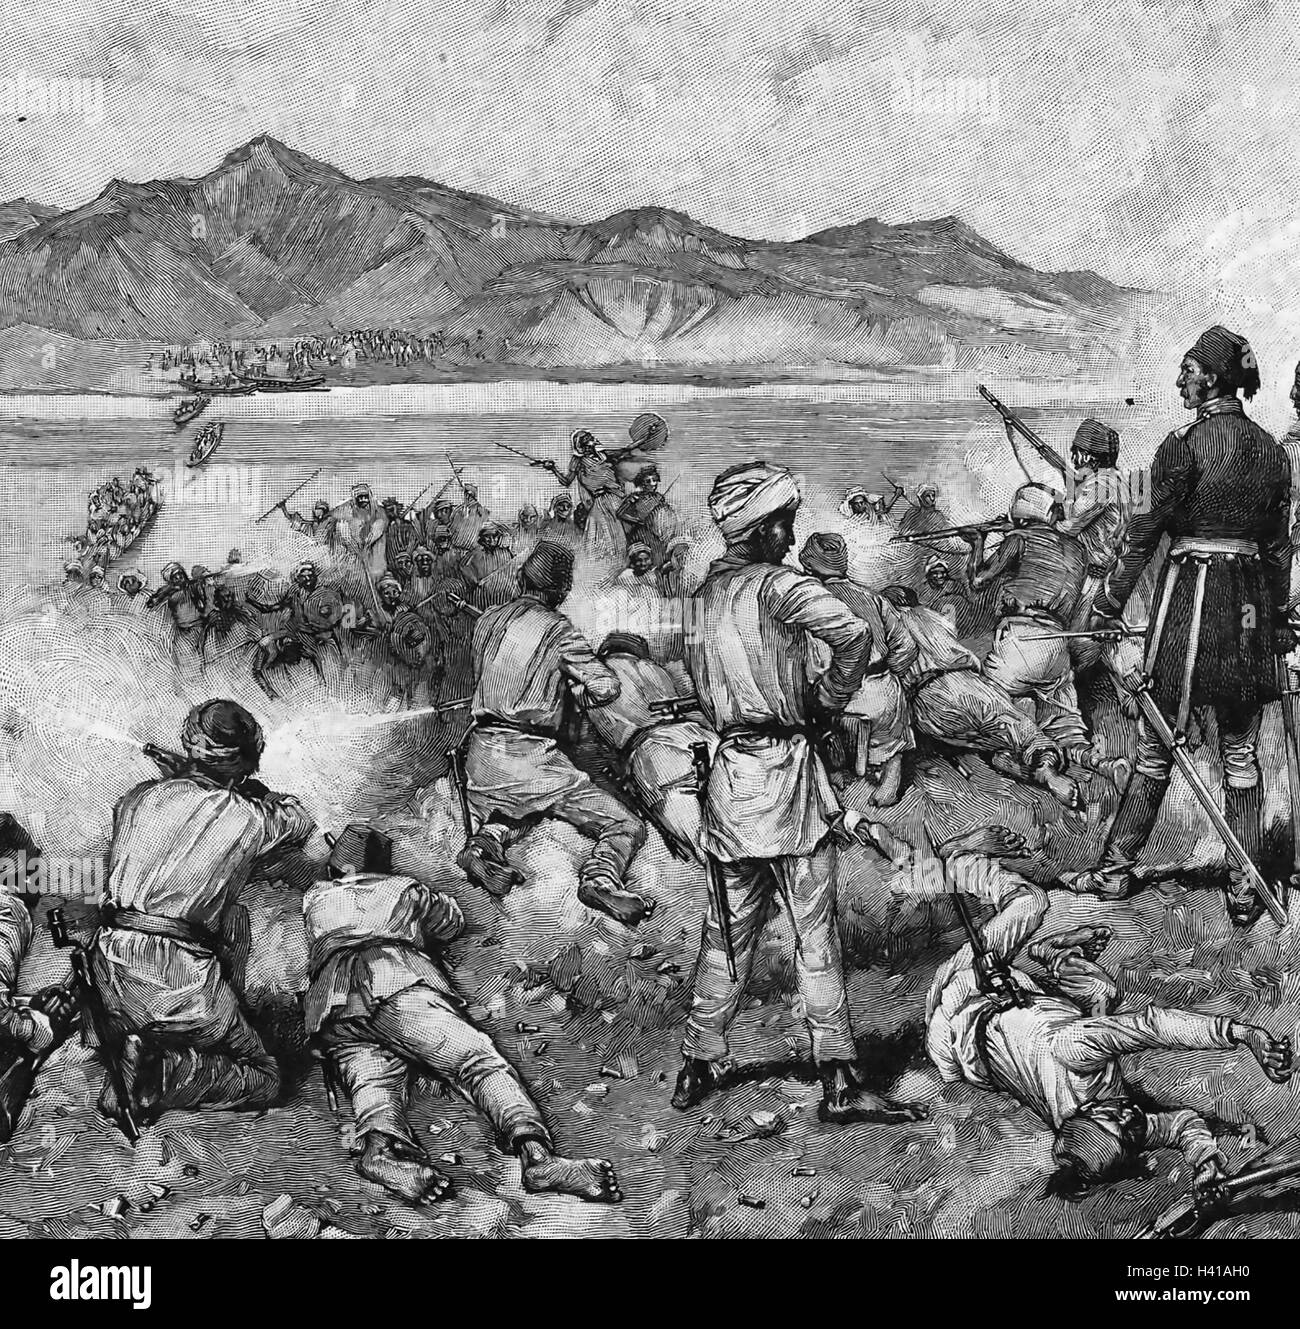 CHARLES GEORGE GORDON (1833-1885) British Army officer. His mixed Egyptian forces defeating Mahdi forces trying - Stock Image